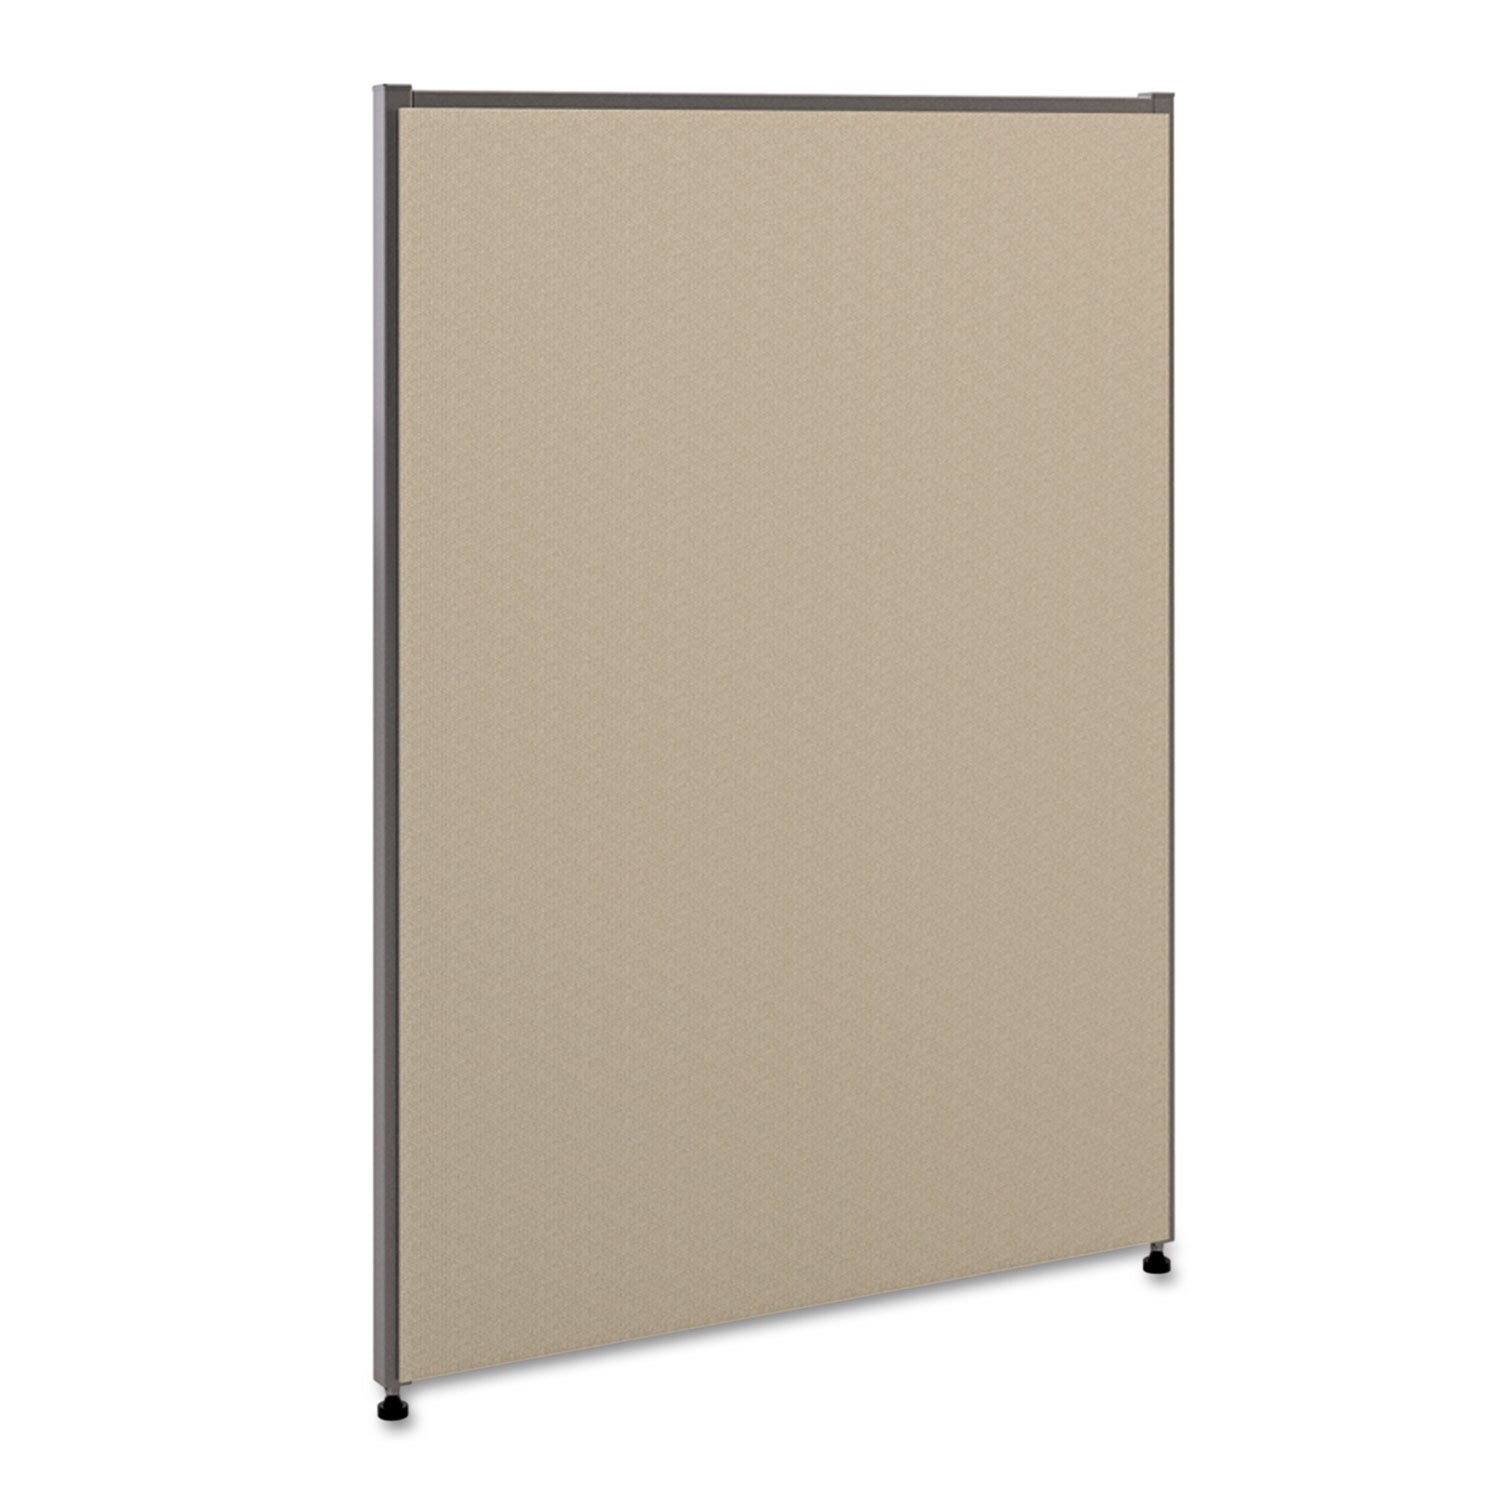 BASYX Verse Office Panel 30-inch wide x 42-inch high Grey...